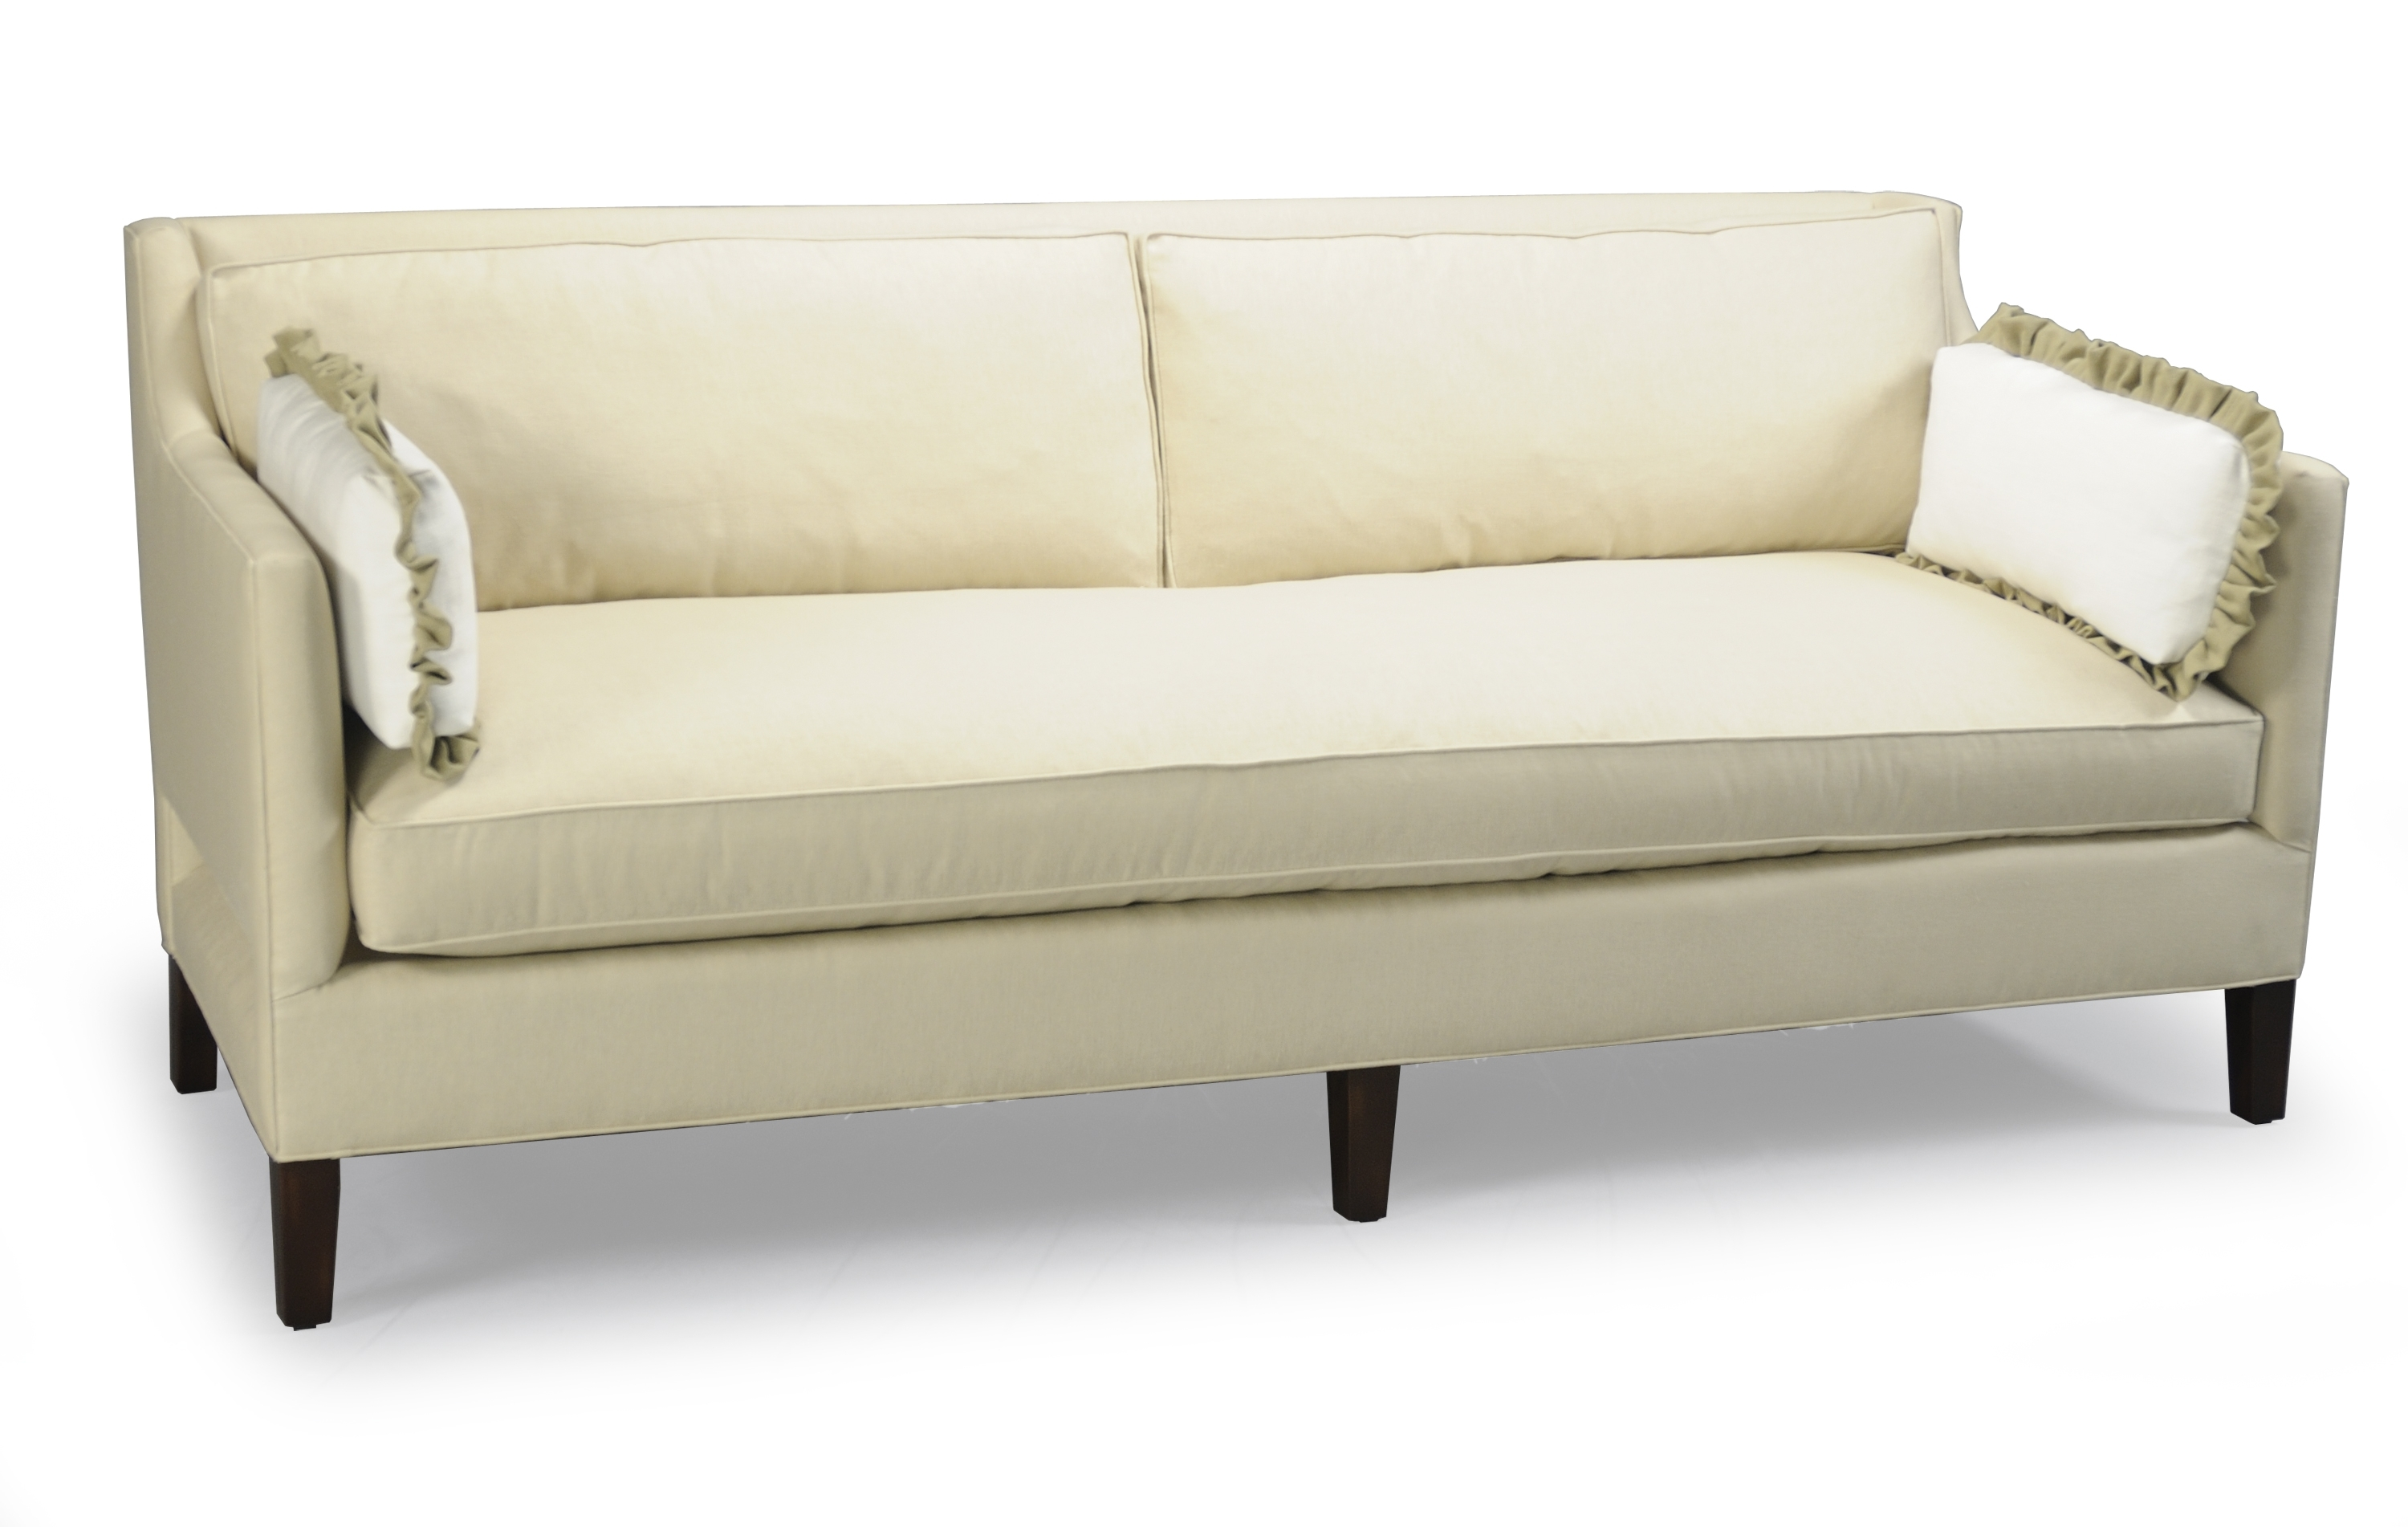 Furniture | Stanford Furniture Inside Avery 2 Piece Sectionals With Laf Armless Chaise (View 25 of 25)